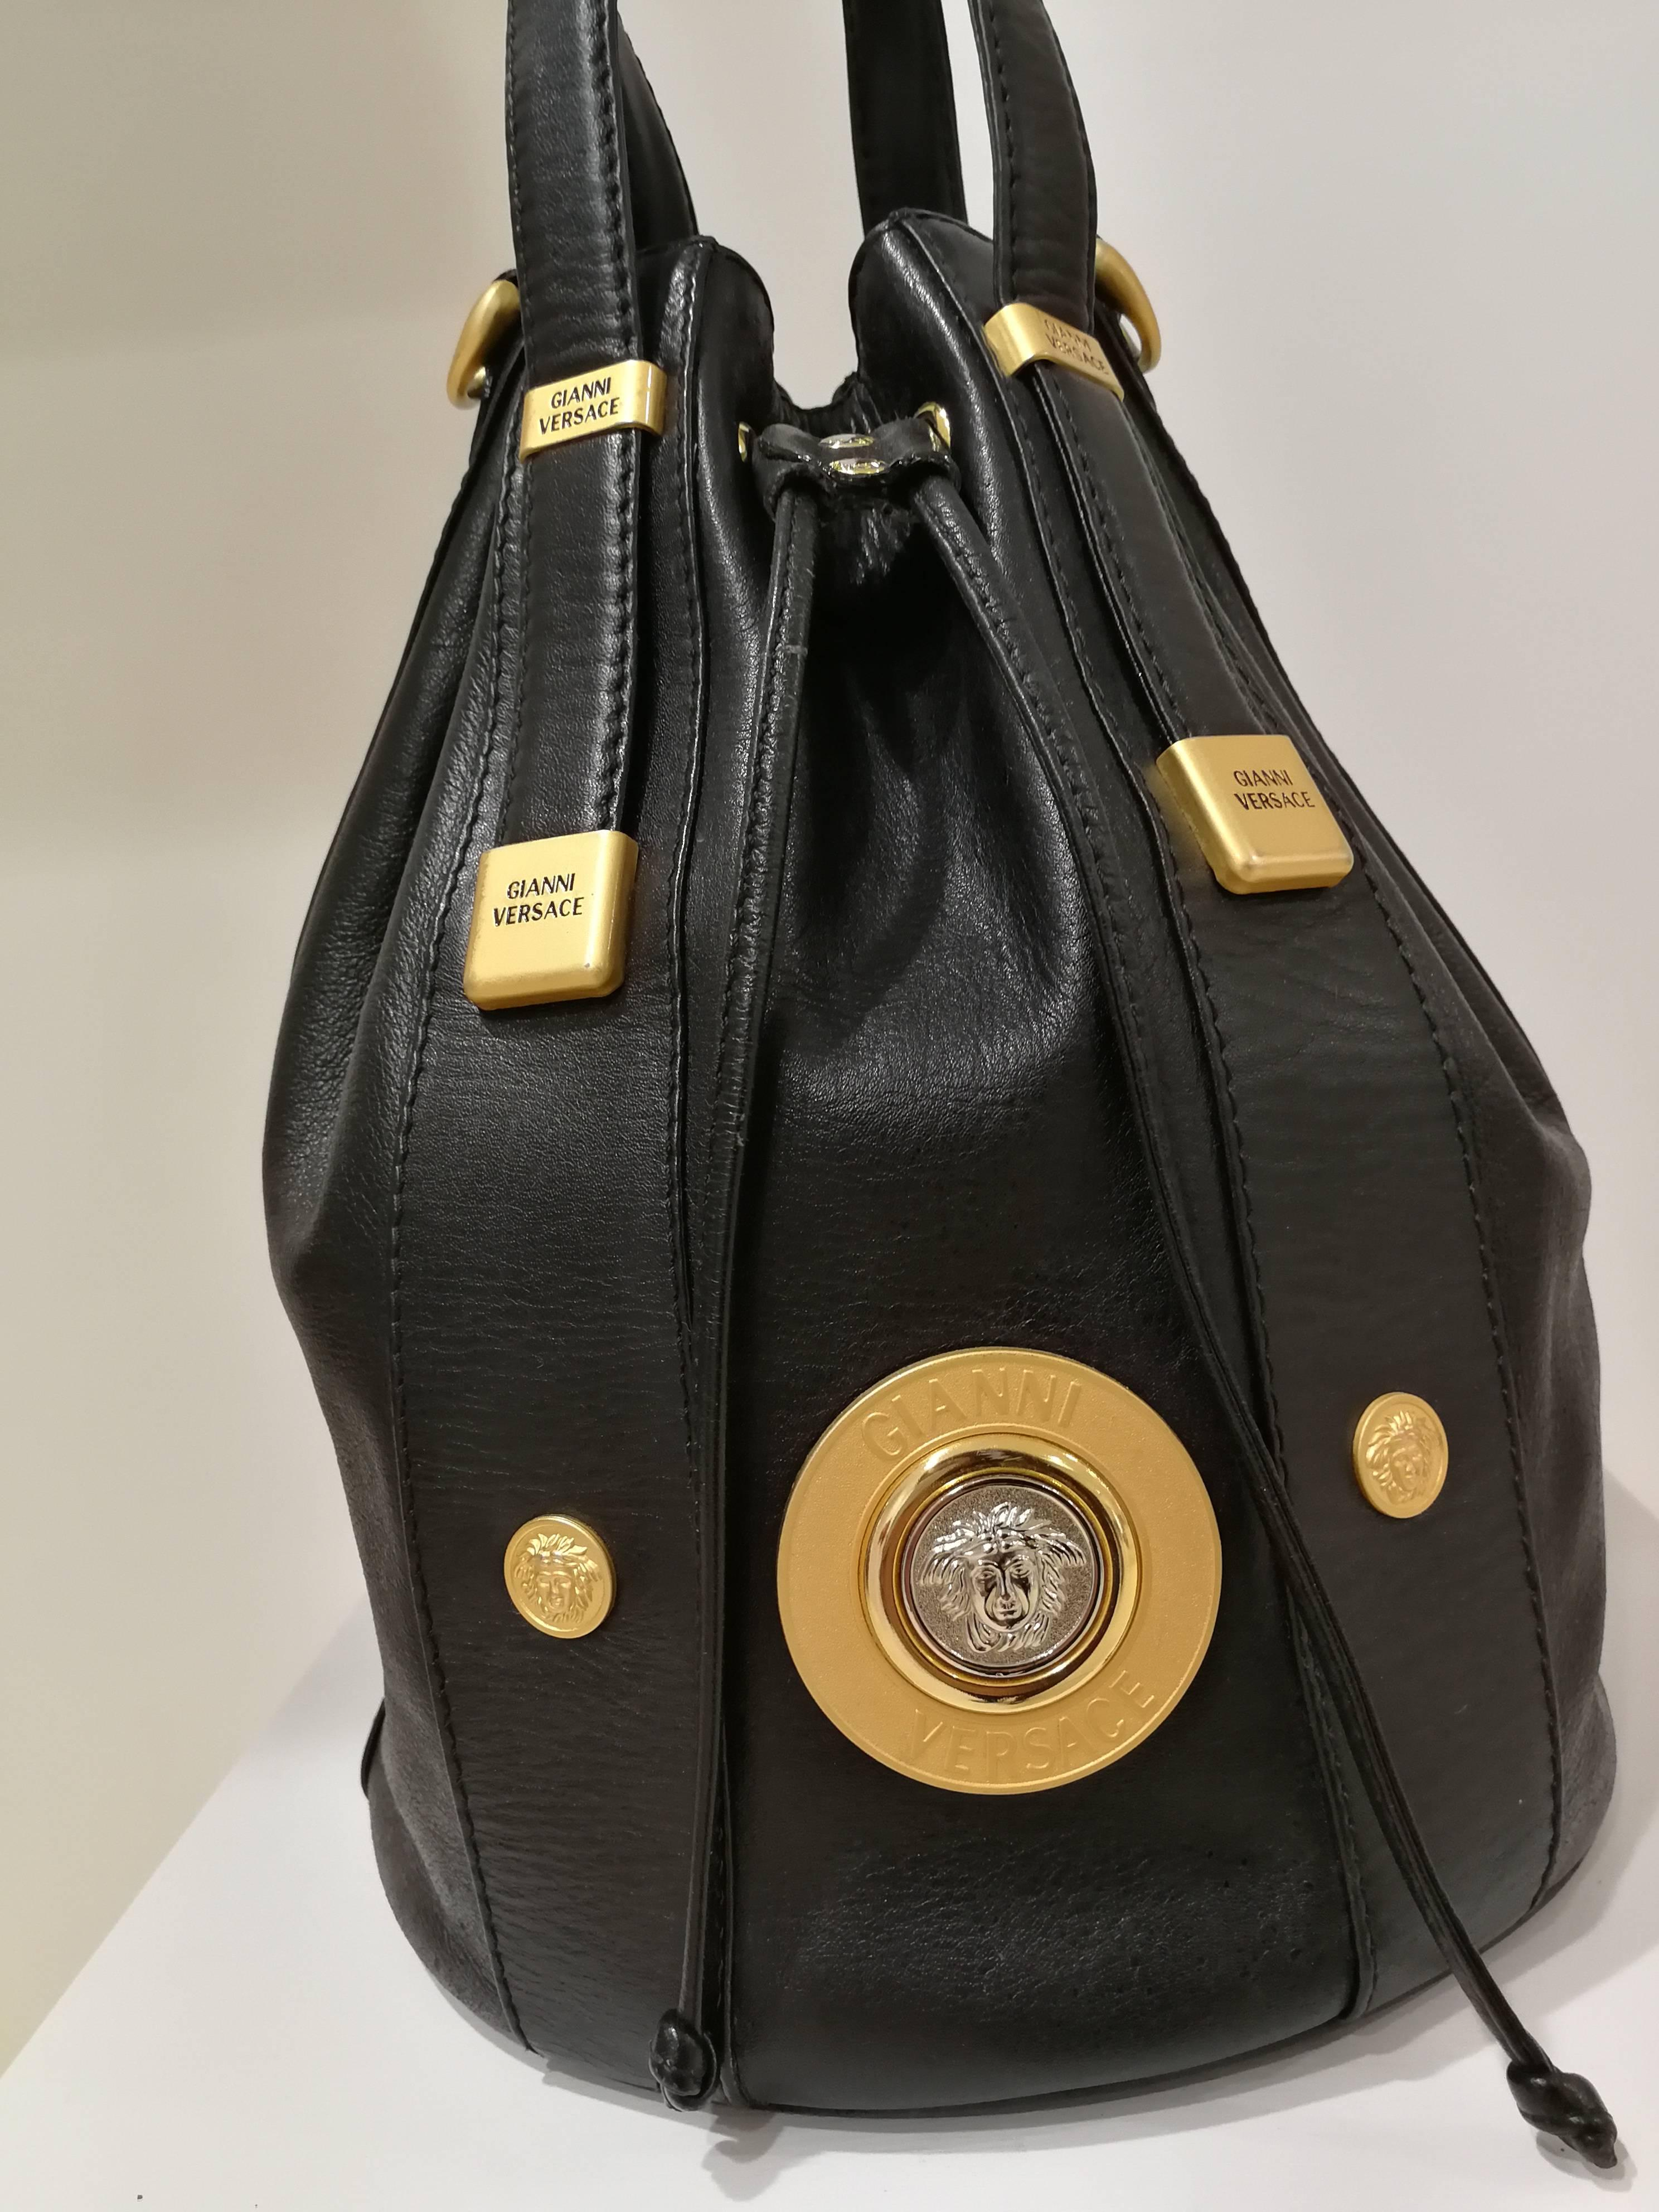 84931e59ed Gianni Versace Black leather Gold and Silver Tone Studs Satchel - Shoulder  Bag at 1stdibs